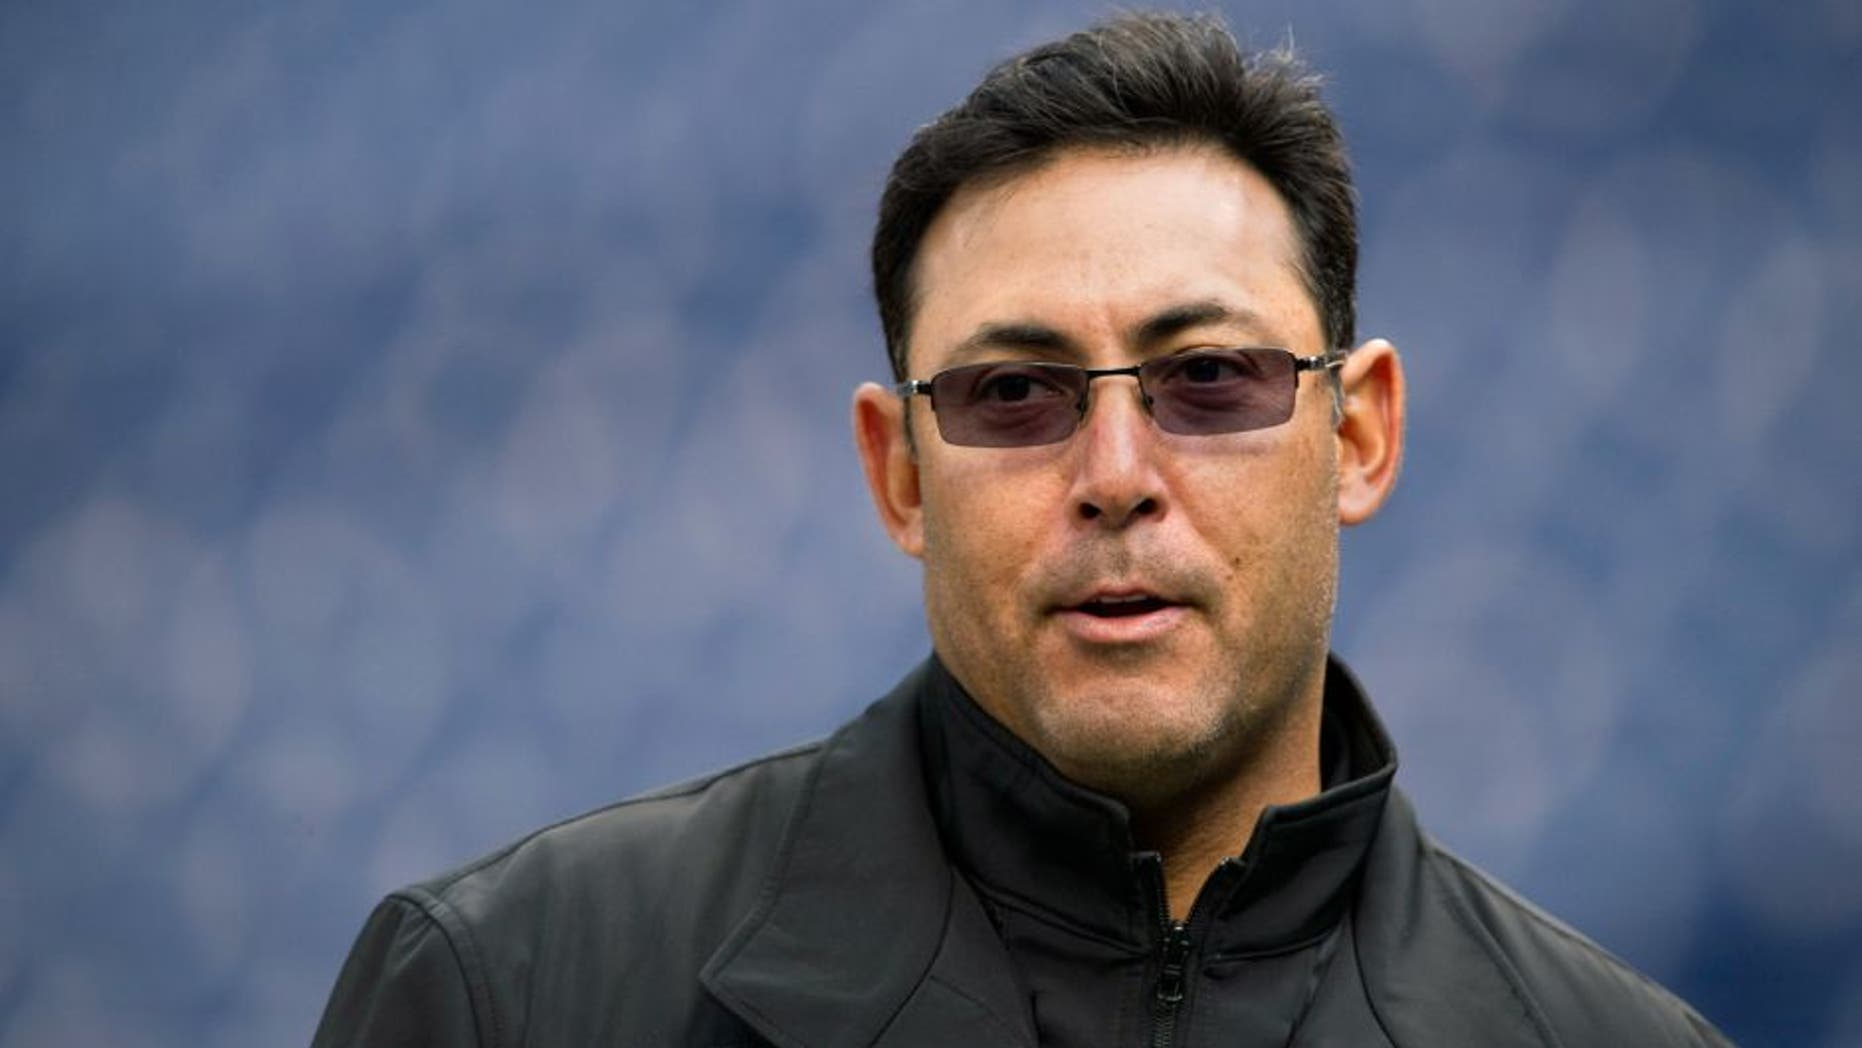 Apr 12, 2012; Philadelphia, PA, USA; Philadelphia Phillies general manager Ruben Amaro Jr during batting practice prior to playing the Miami Marlins at Citizens Bank Park. Mandatory Credit: Howard Smith-USA TODAY Sports